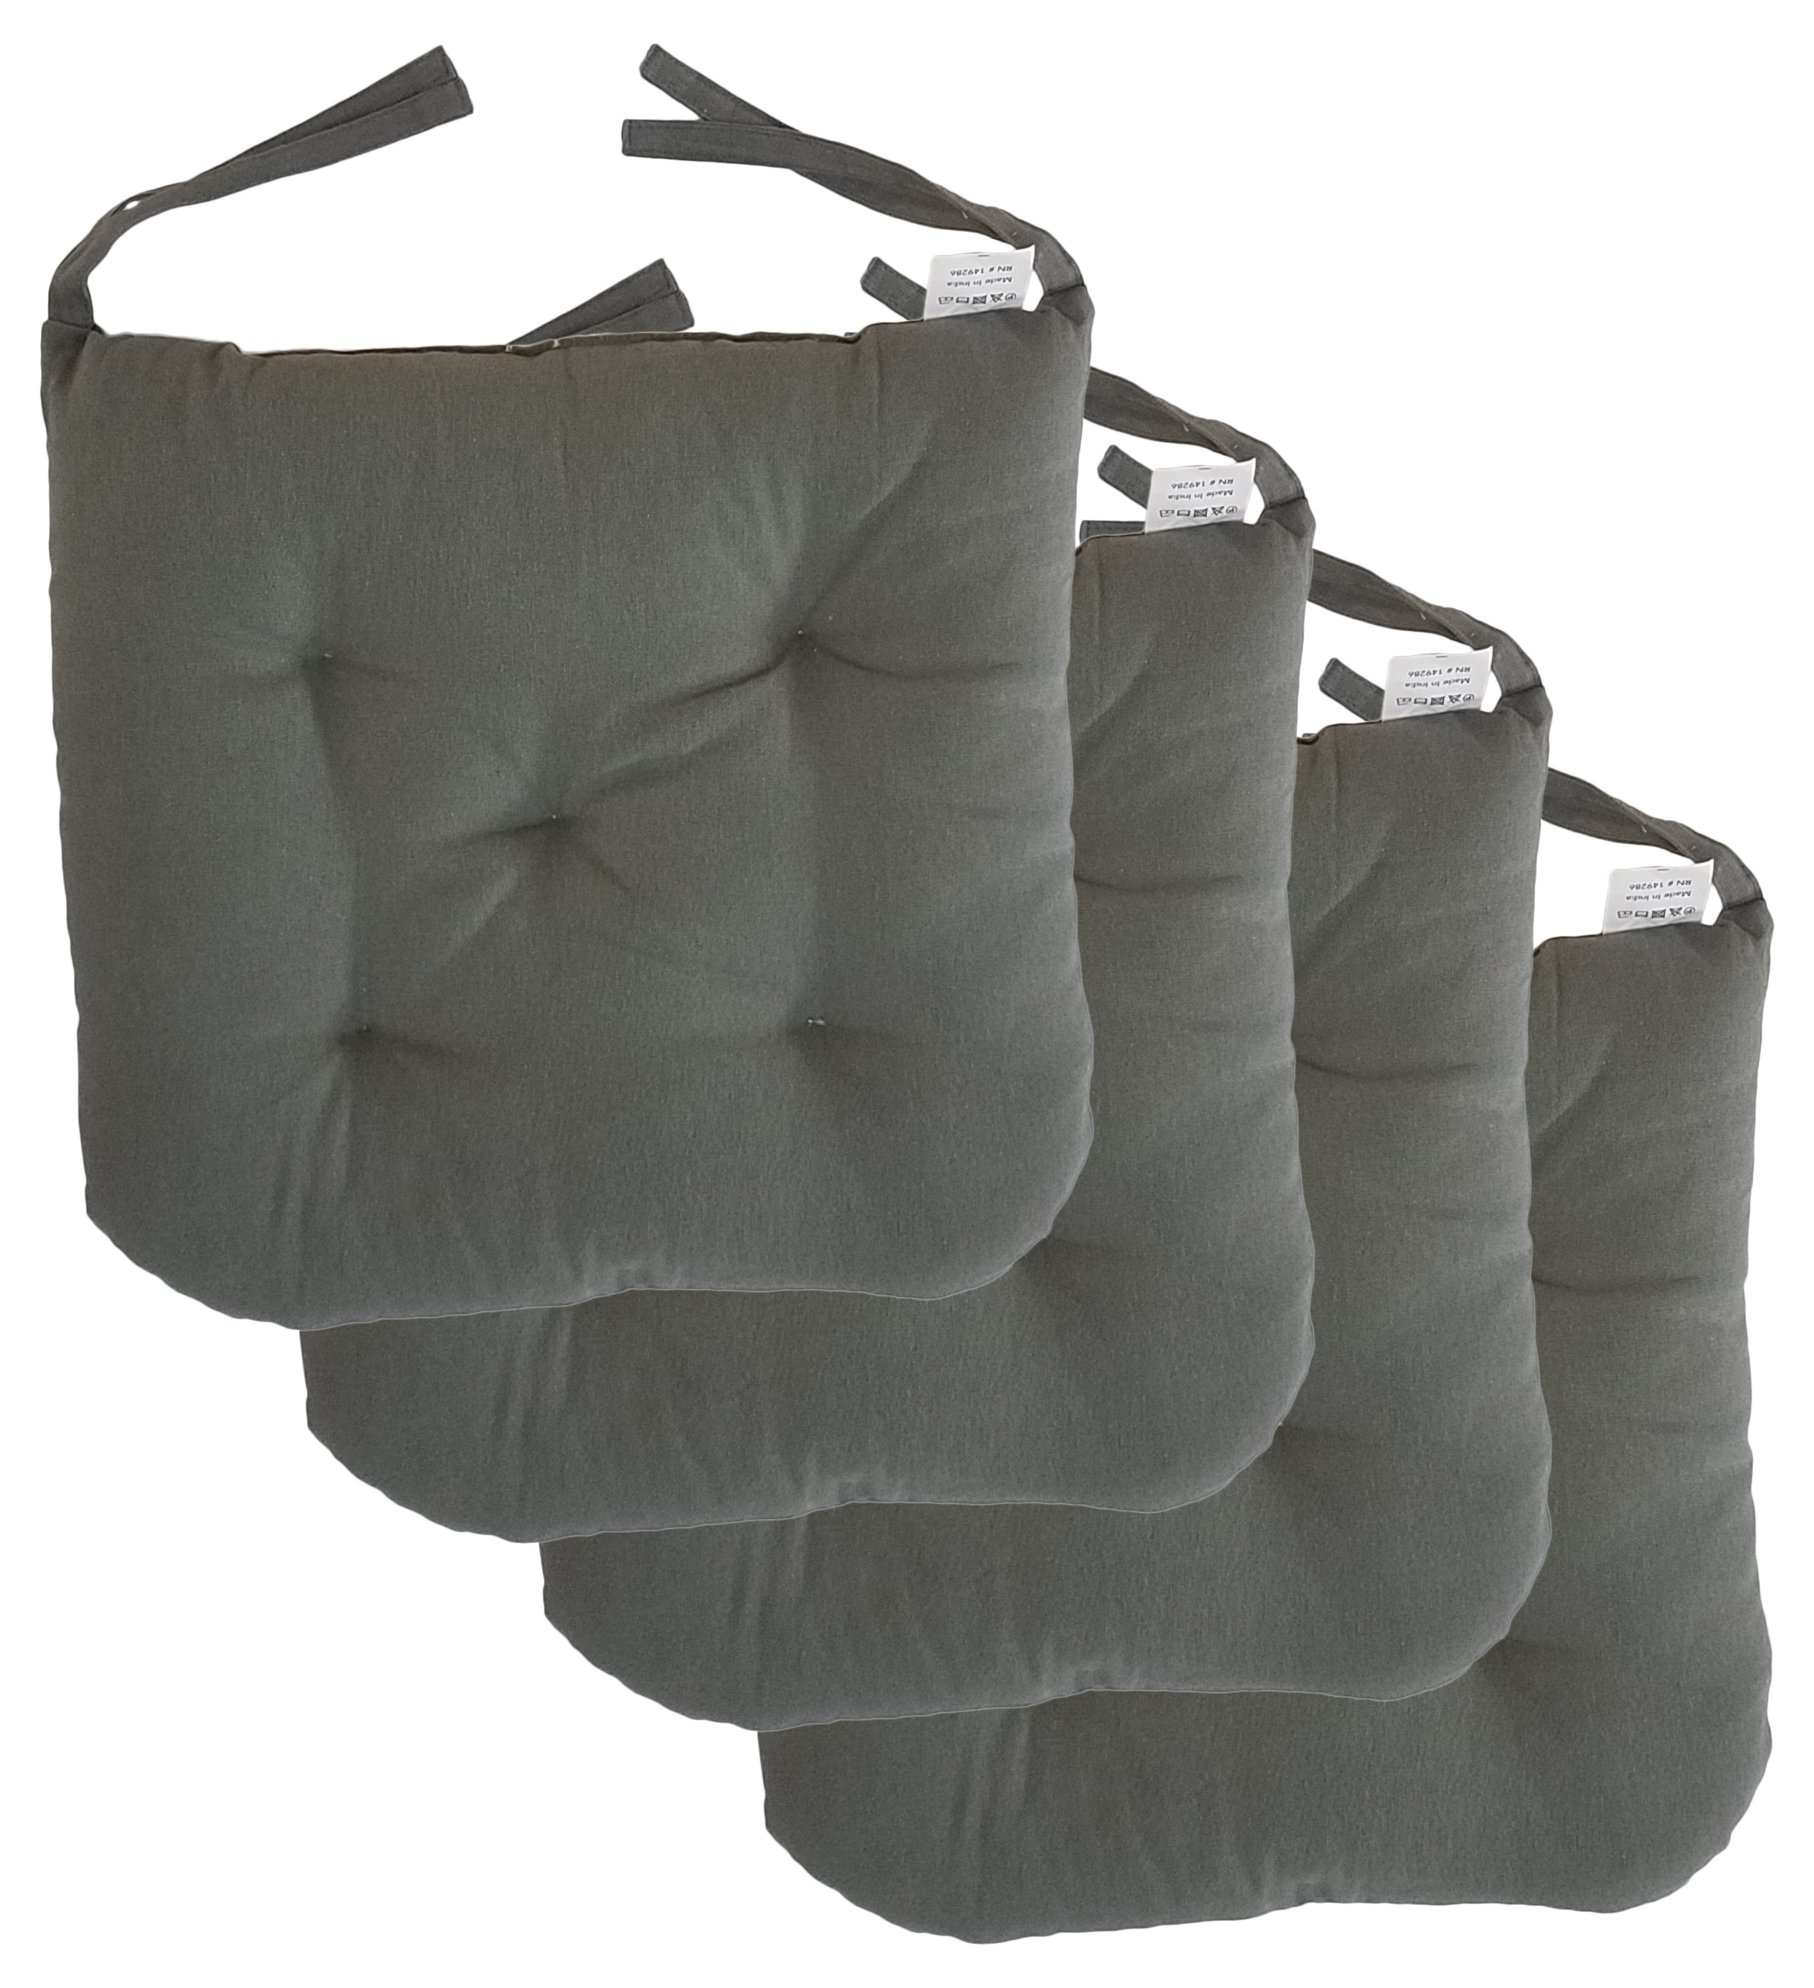 """Cottone 100% Cotton Chair Pads w/ Ties (Set of 4)   16"""" x 15"""" Round Square   Extra-Comfortable & Soft Seat Cushion   Ergonomic Pillows for Rocking, Dining, Patio, Camping, Kitchen Chairs & More (Grey)"""